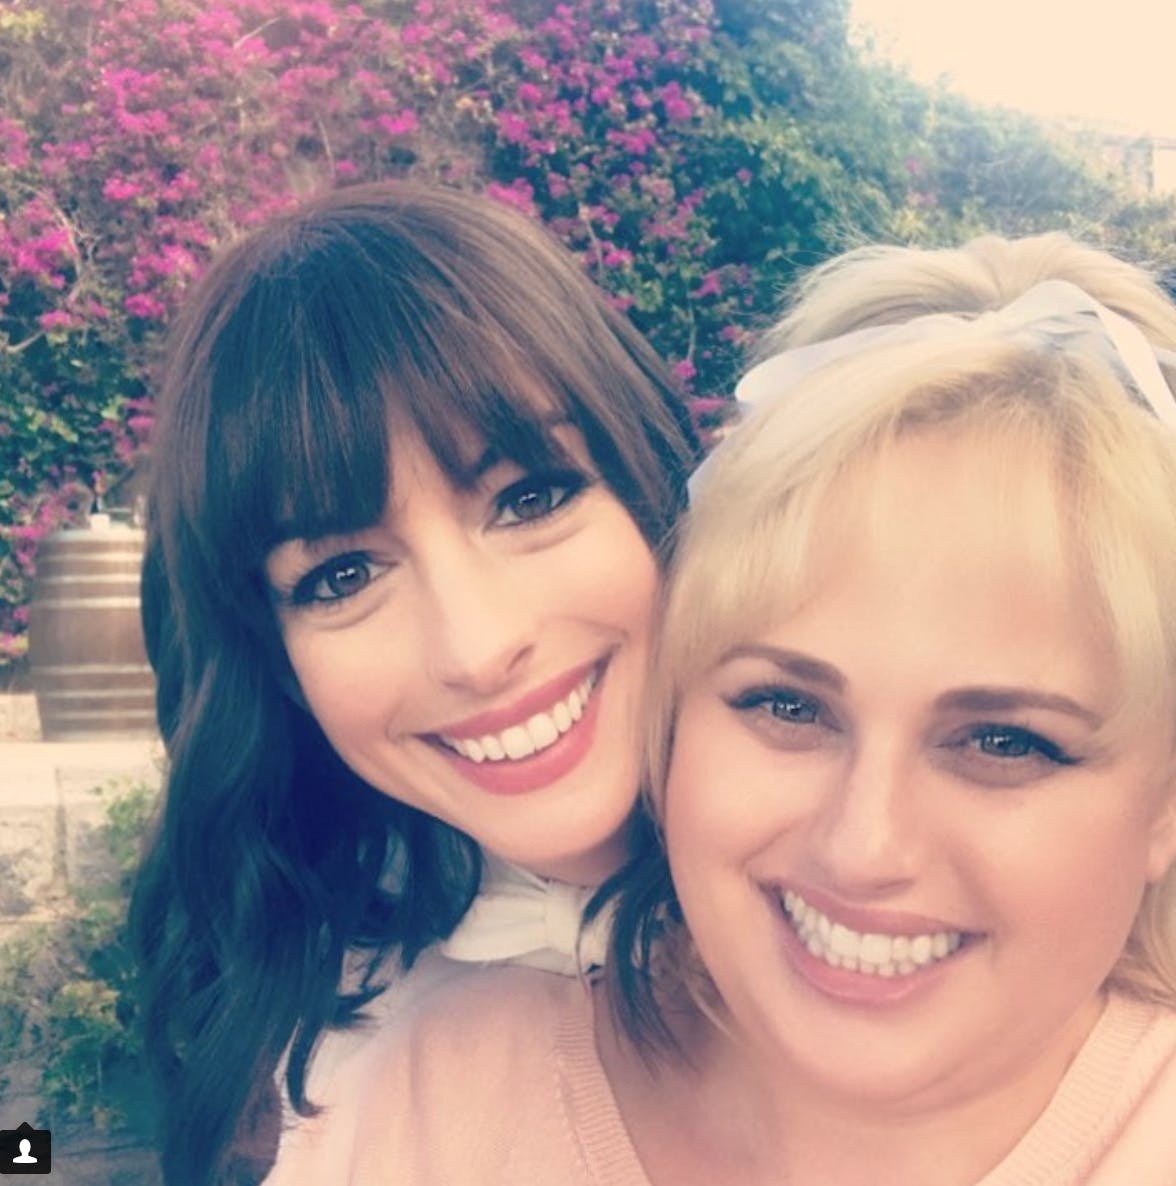 Anne Hathaway Rebel Wilson Movie: From Amy Schumer's Behind-the-scenes Snap To Reese